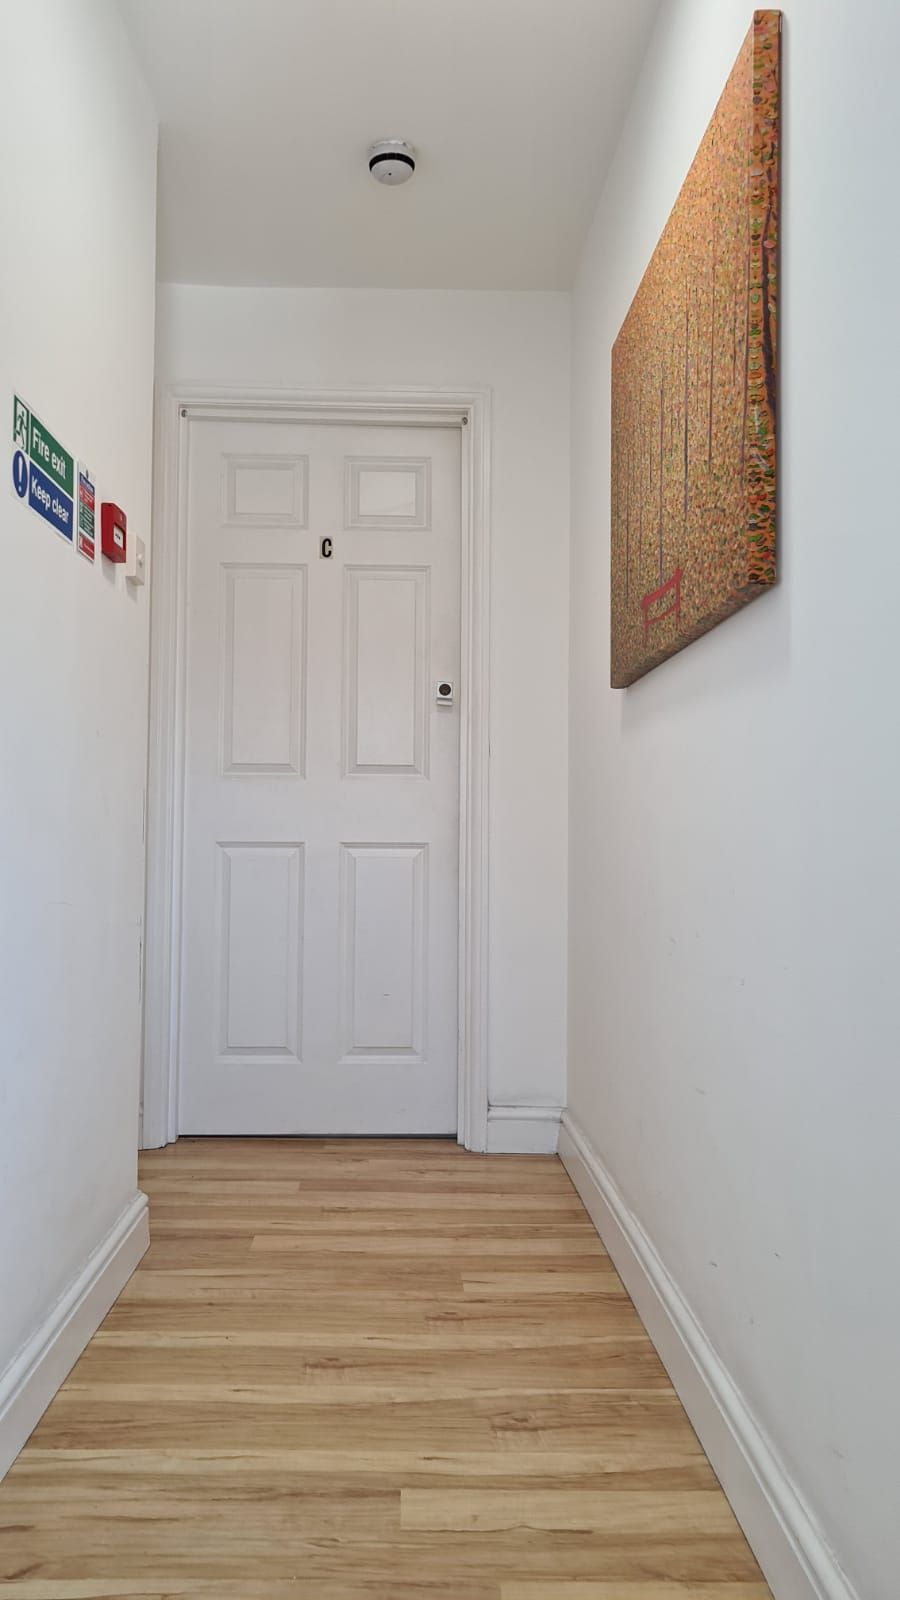 1 bedroom flat flat/apartment To Let in Wembley - Hallway